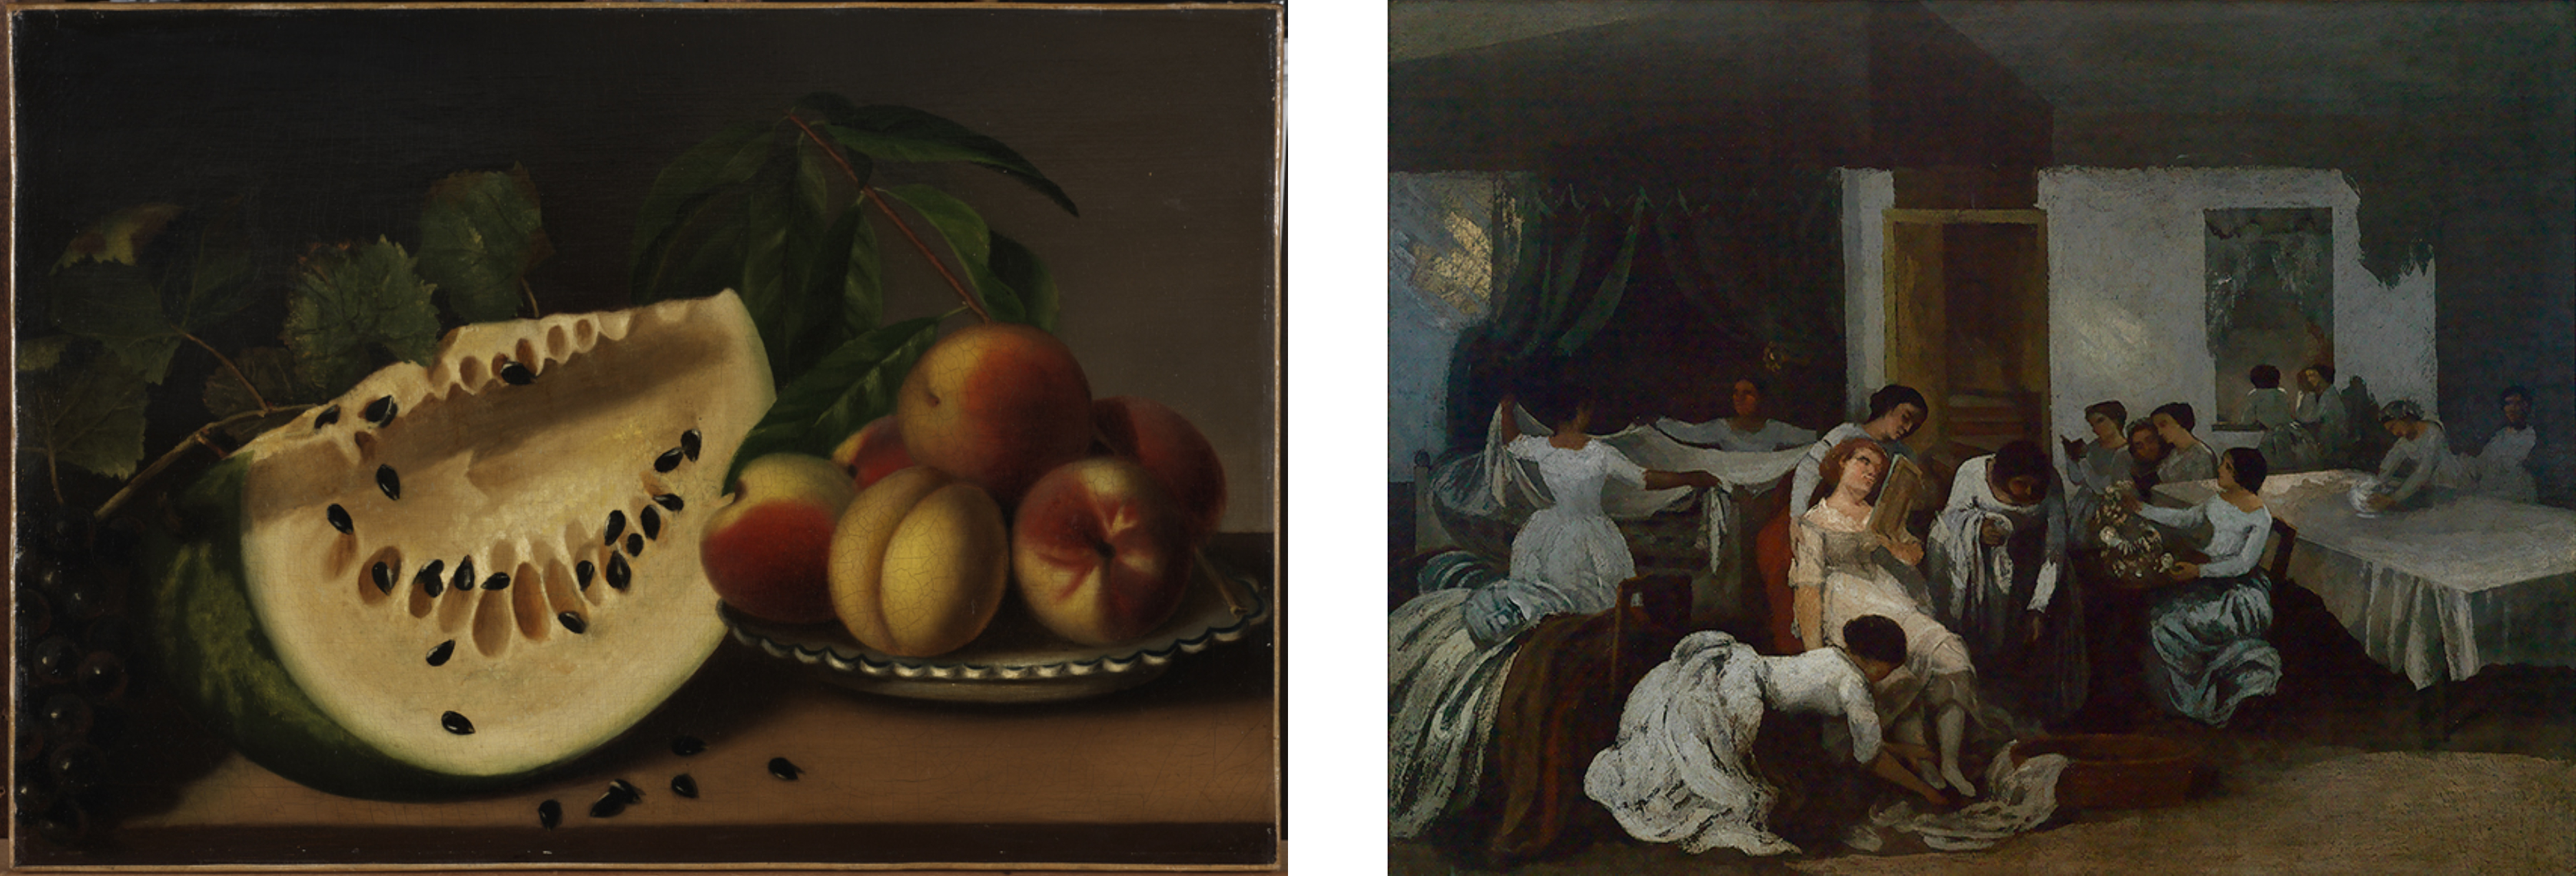 On the left: Peale's Still Life with Watermelon and Peaches: A large slice of yellow melon sits next to a pile of peaches. Some of the black seeds have fallen away from the melon and there is foliage behind the fruit. The colors are somber. On the right: servants in white dresses make up beds, set tables, polish a vase, and dress a seated dead girl in the center. The room is dark but there are small smudges of gold light on the back wall, a table, and the dead girl.